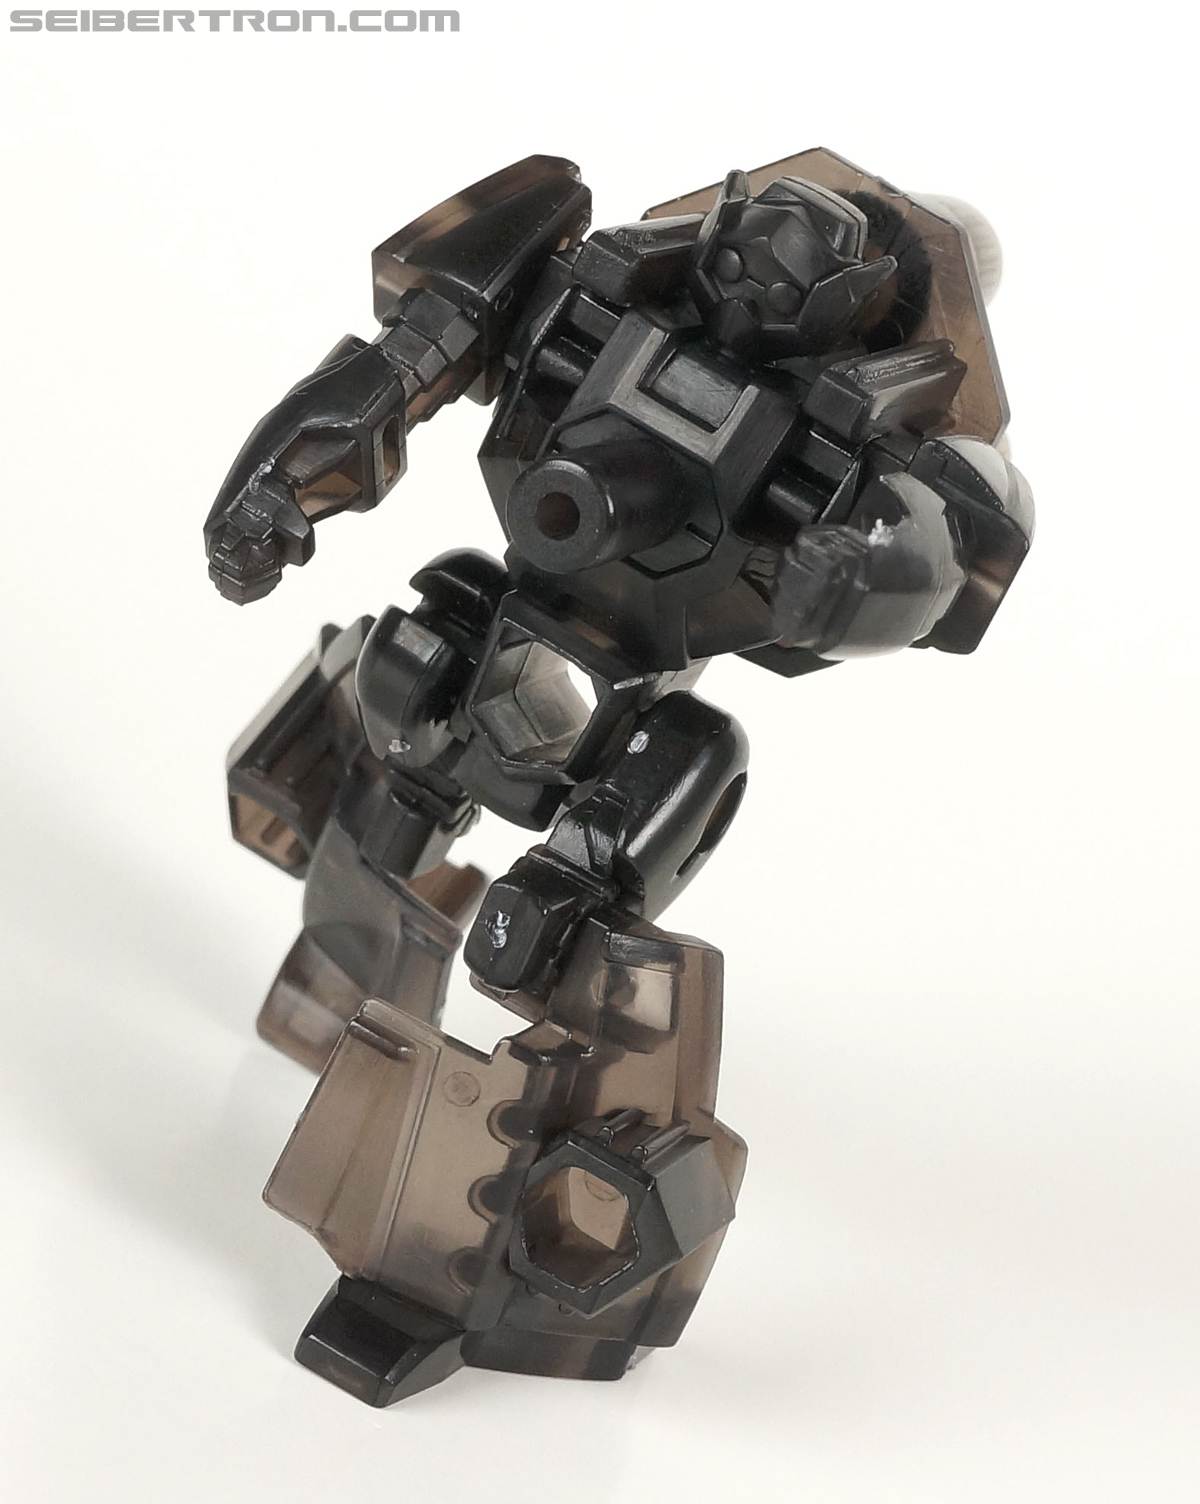 Transformers Arms Micron Shadow C.L. (Image #70 of 85)